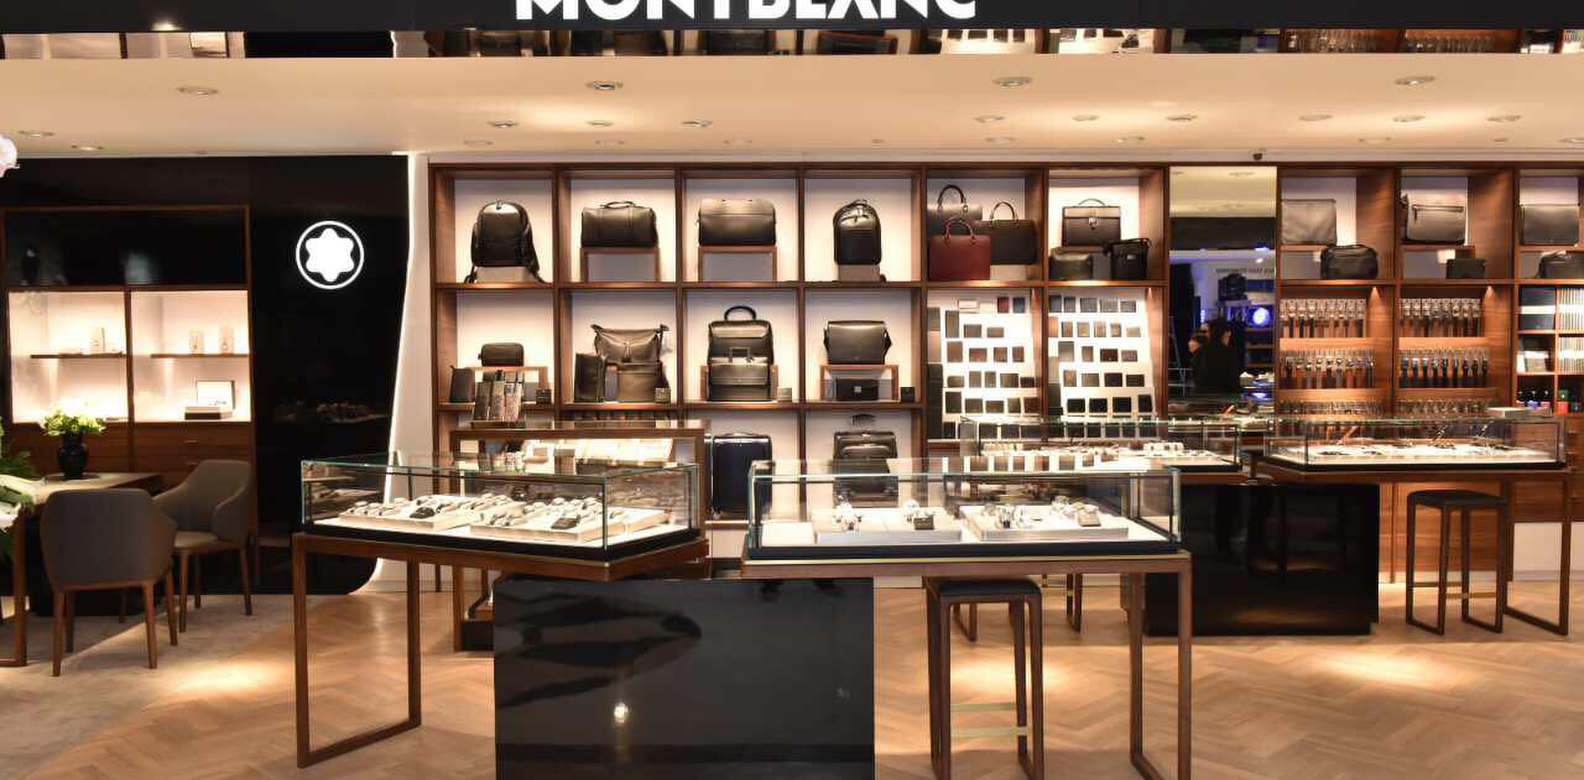 montblanc unveils new store concept philippine tatler. Black Bedroom Furniture Sets. Home Design Ideas